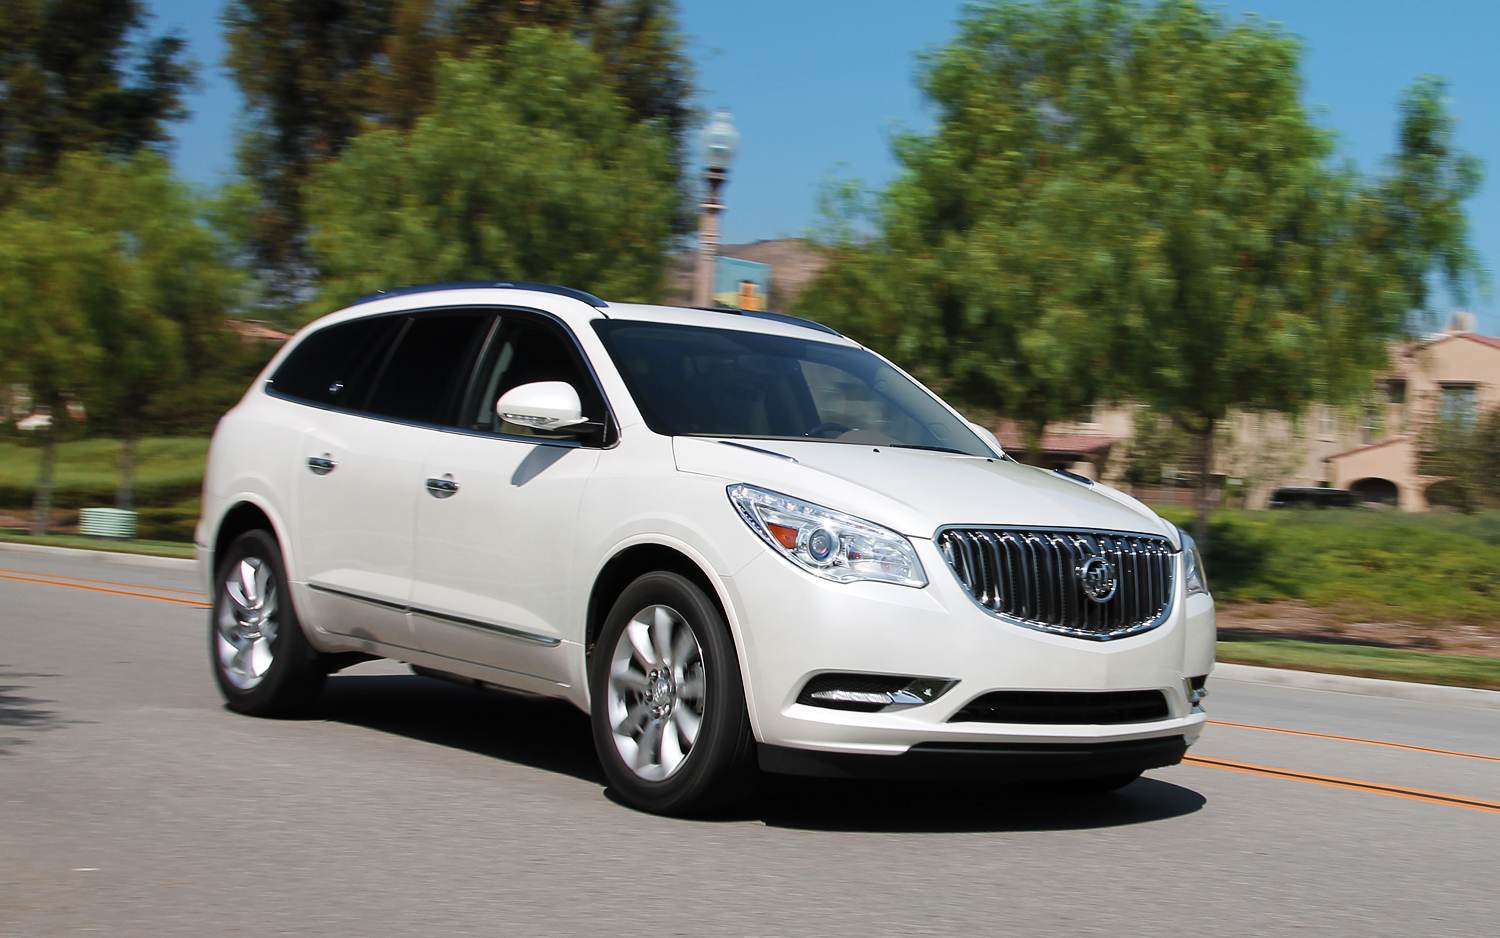 aa suv specs price buick intl bbadzwg overview enclave prices international